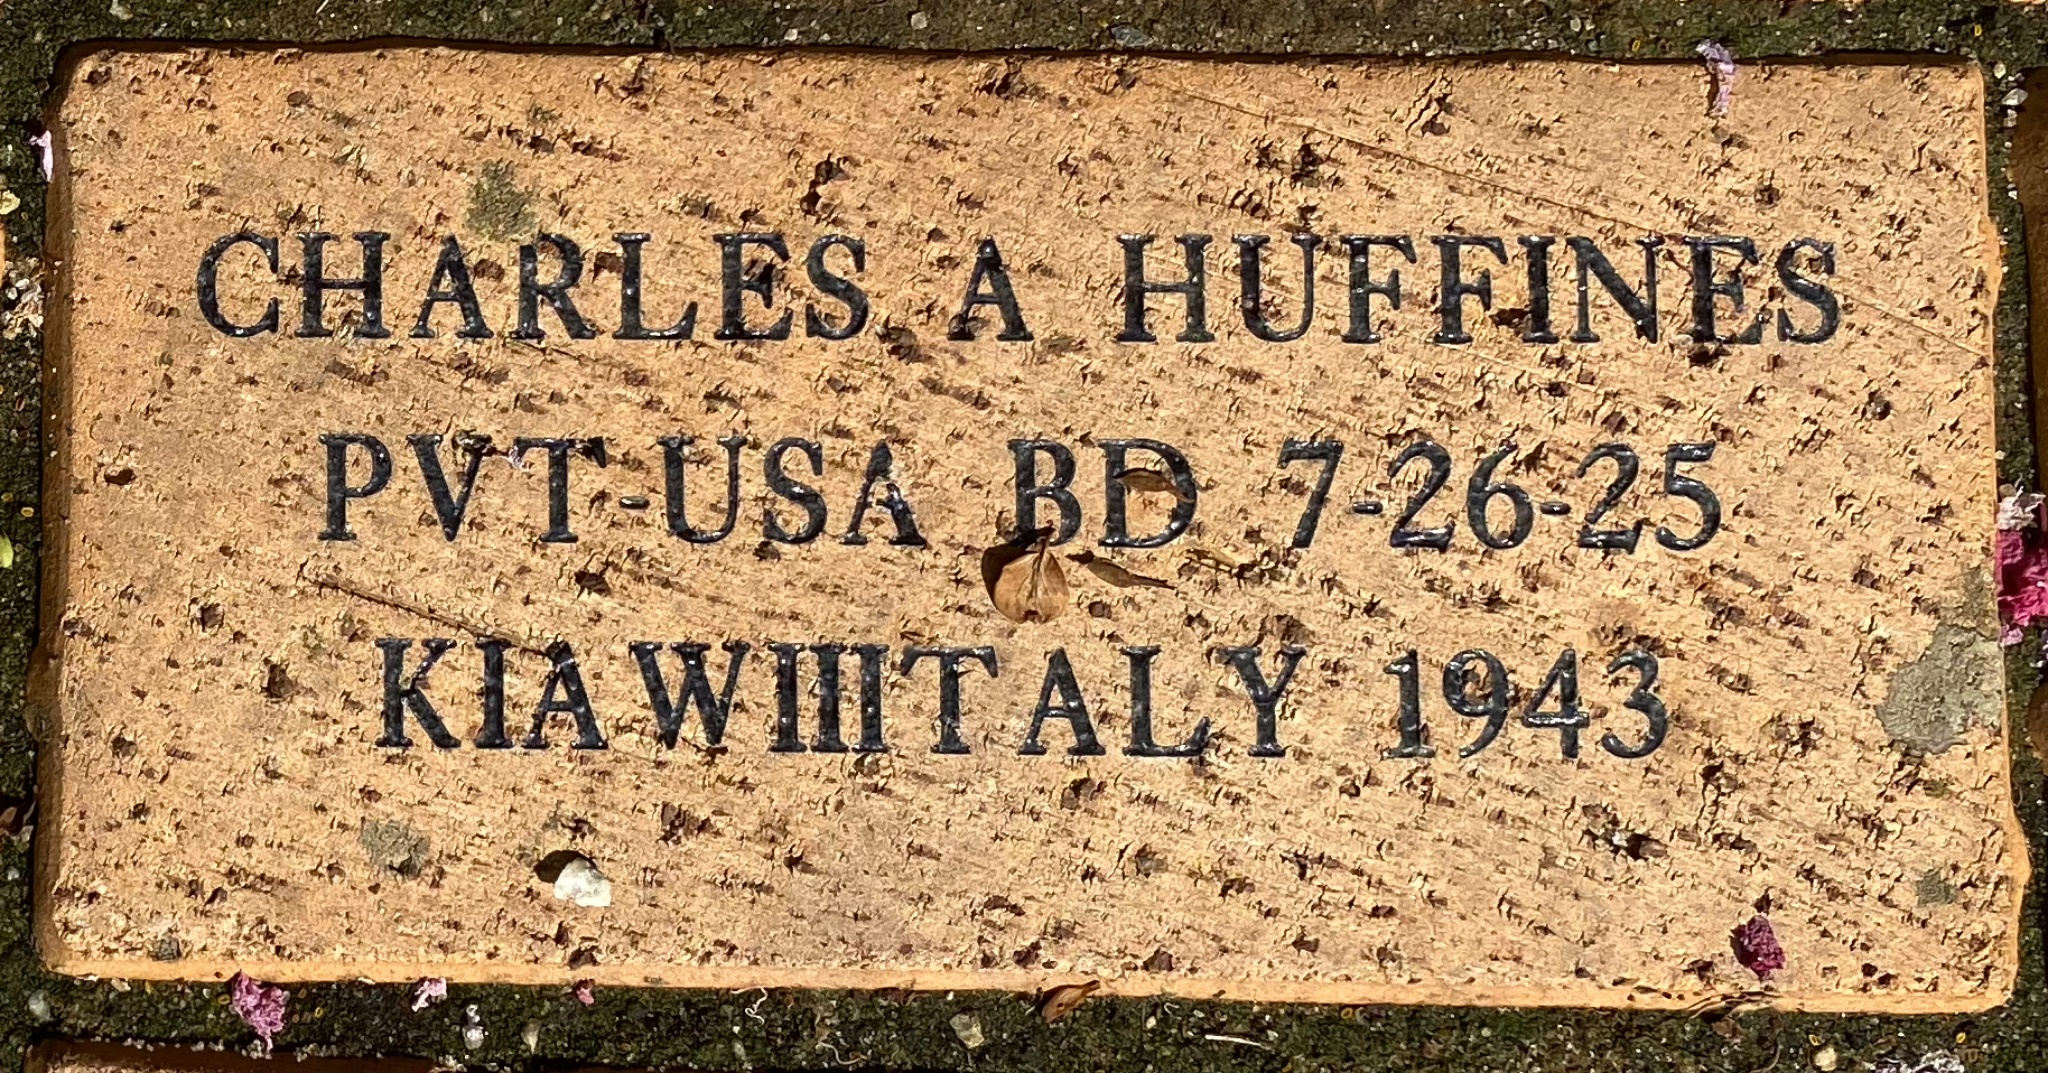 CHARLES A HUFFINES PVT USA BD 7-26-25 KIA WWIIITALY 1943